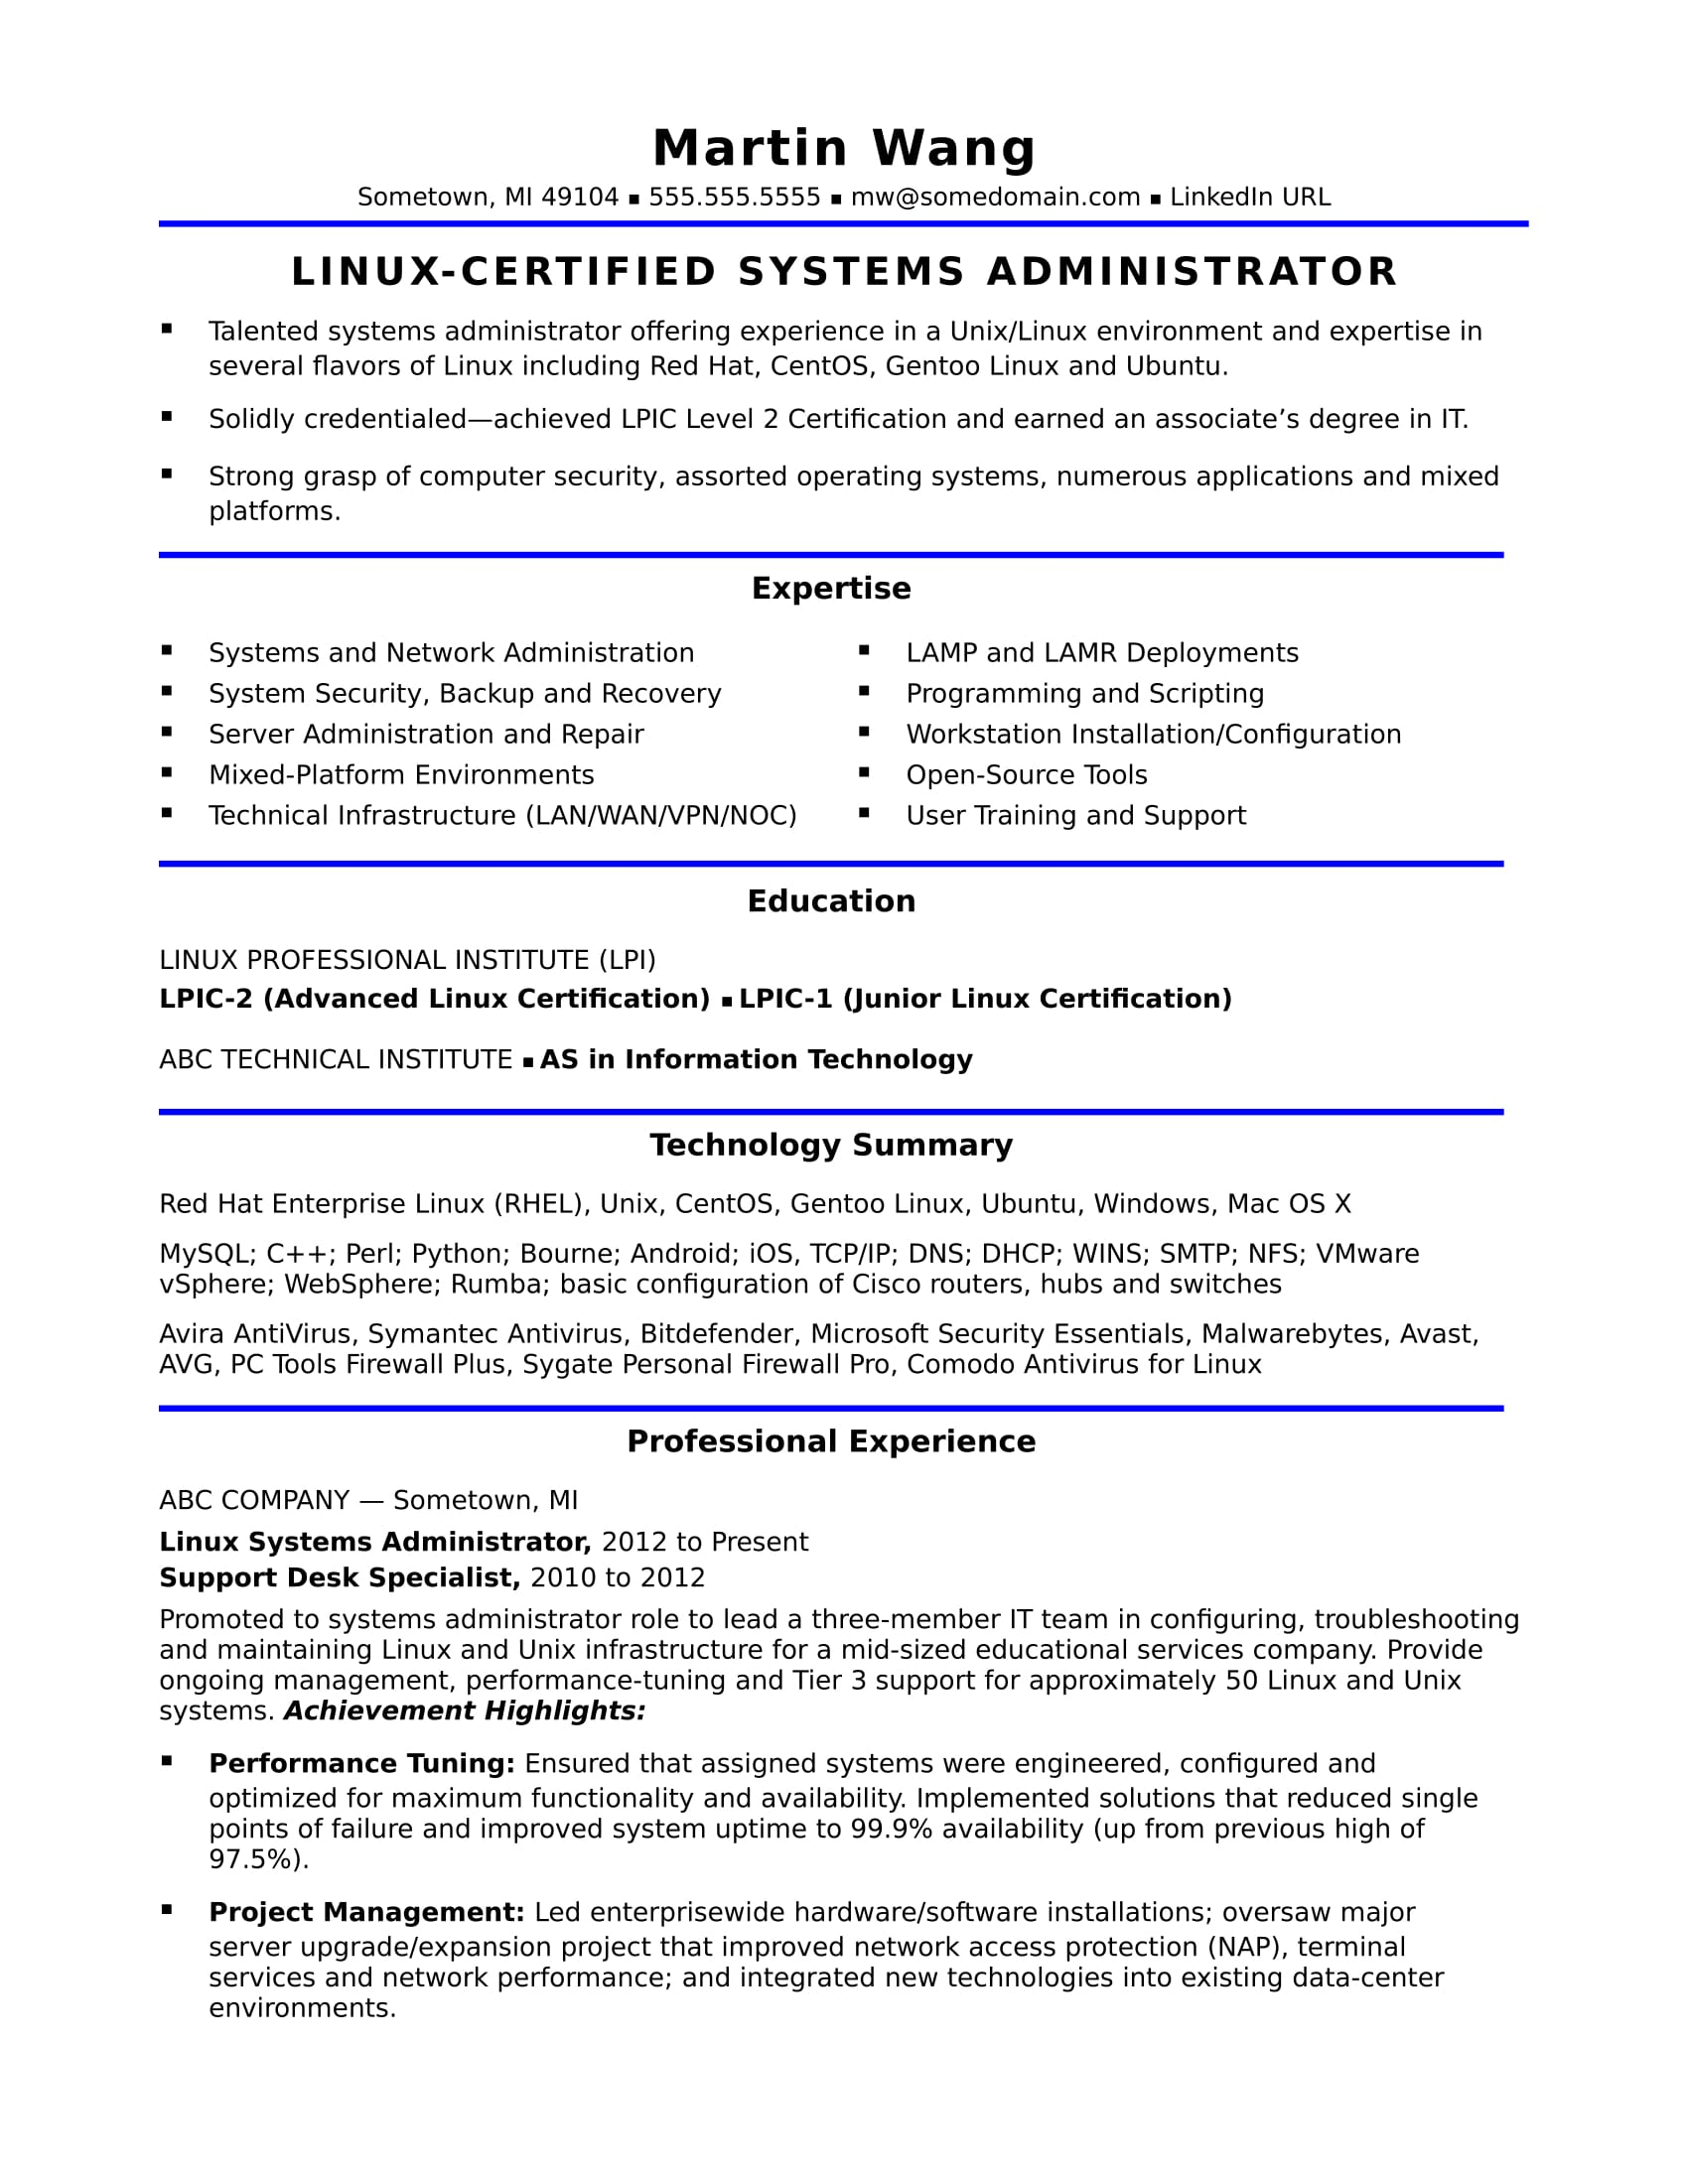 sample resume for midlevel systems administrator monster availability example nursing Resume Availability Resume Example